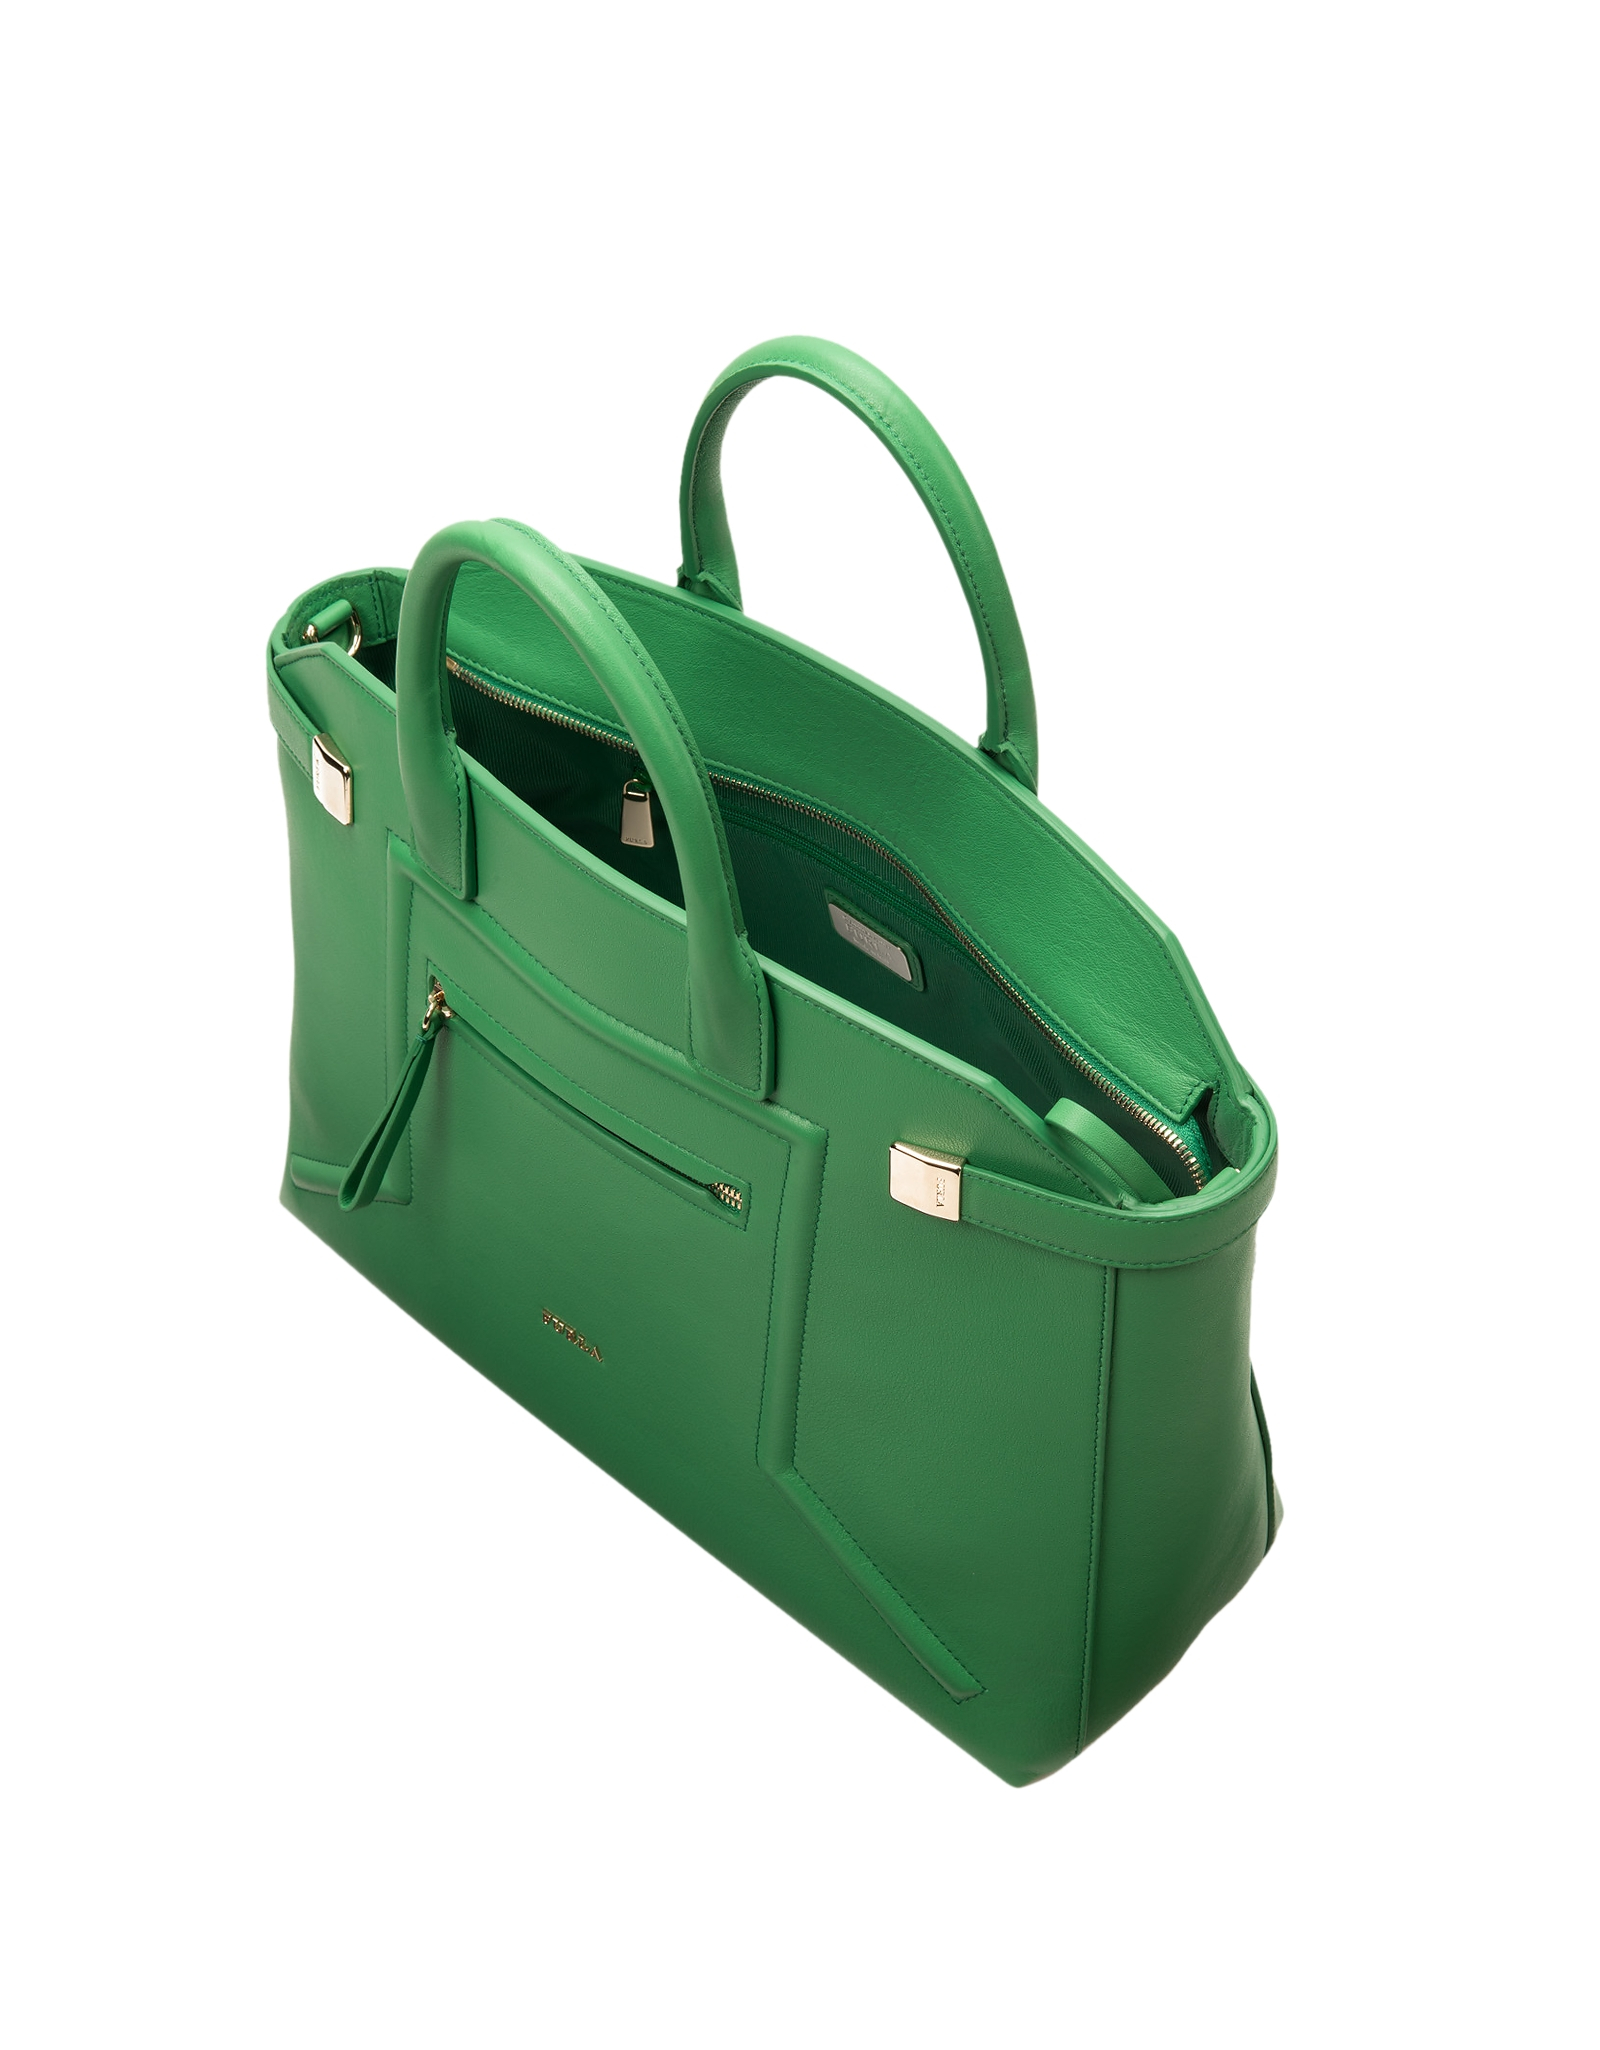 Furla Alice Emerald Green Leather Tote in Green | Lyst